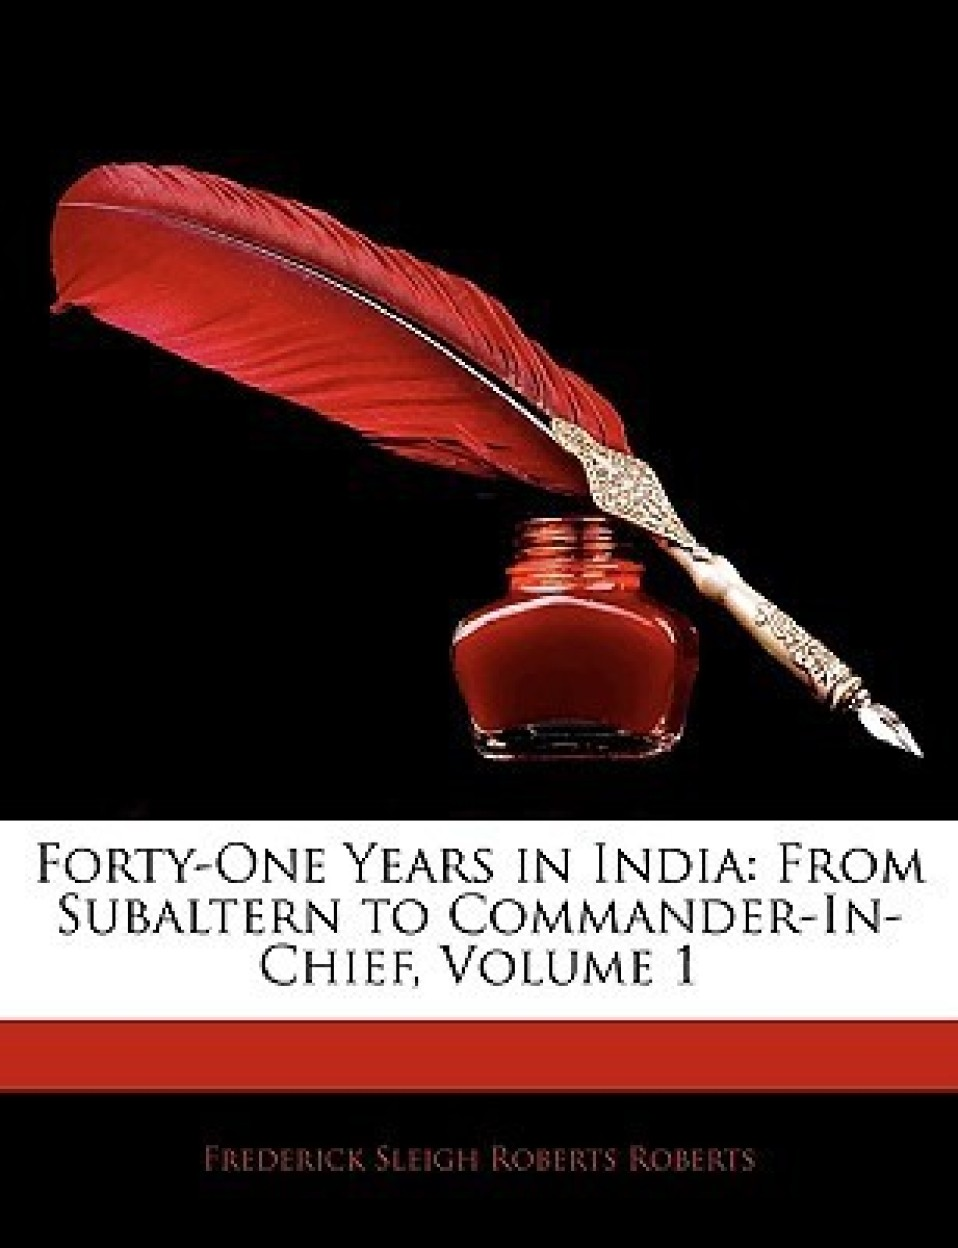 Forty-One Years In India: From Subaltern To Commander-In-Chief, Volume 1 by Frederick Sleigh Roberts Roberts